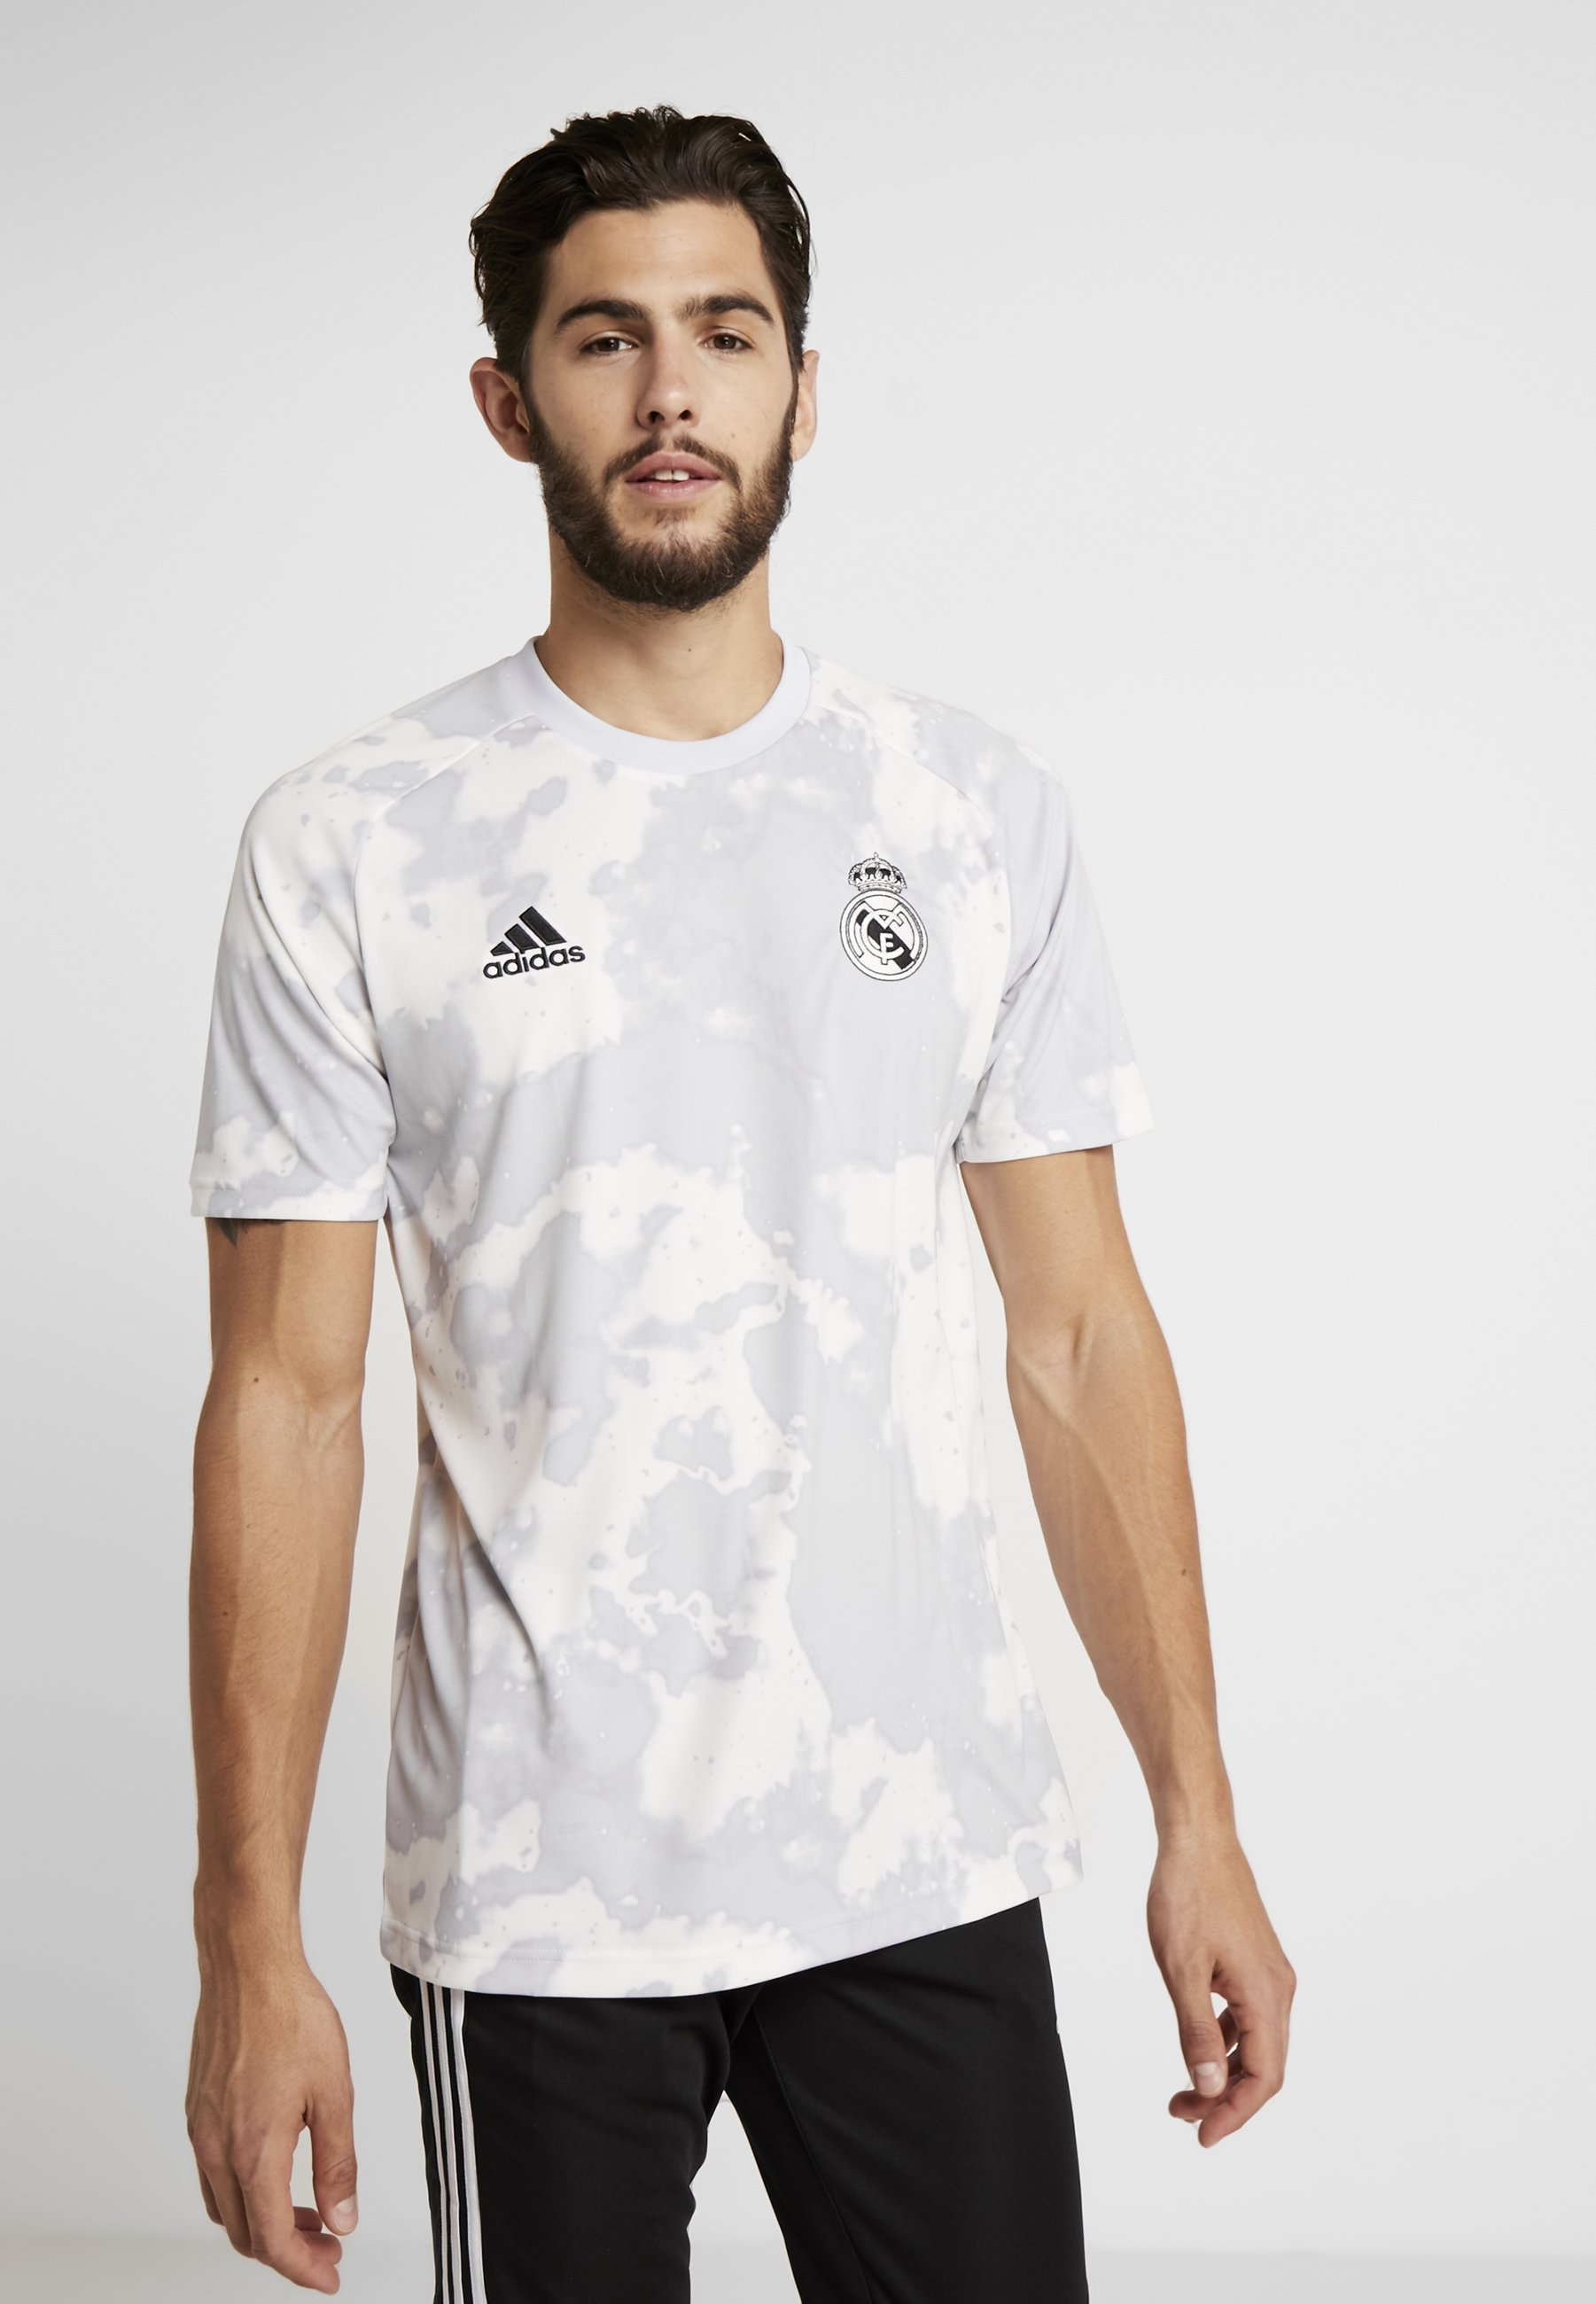 Performance Cool white Supporter De Grey Adidas PreshiArticle Real Ybgvfy76